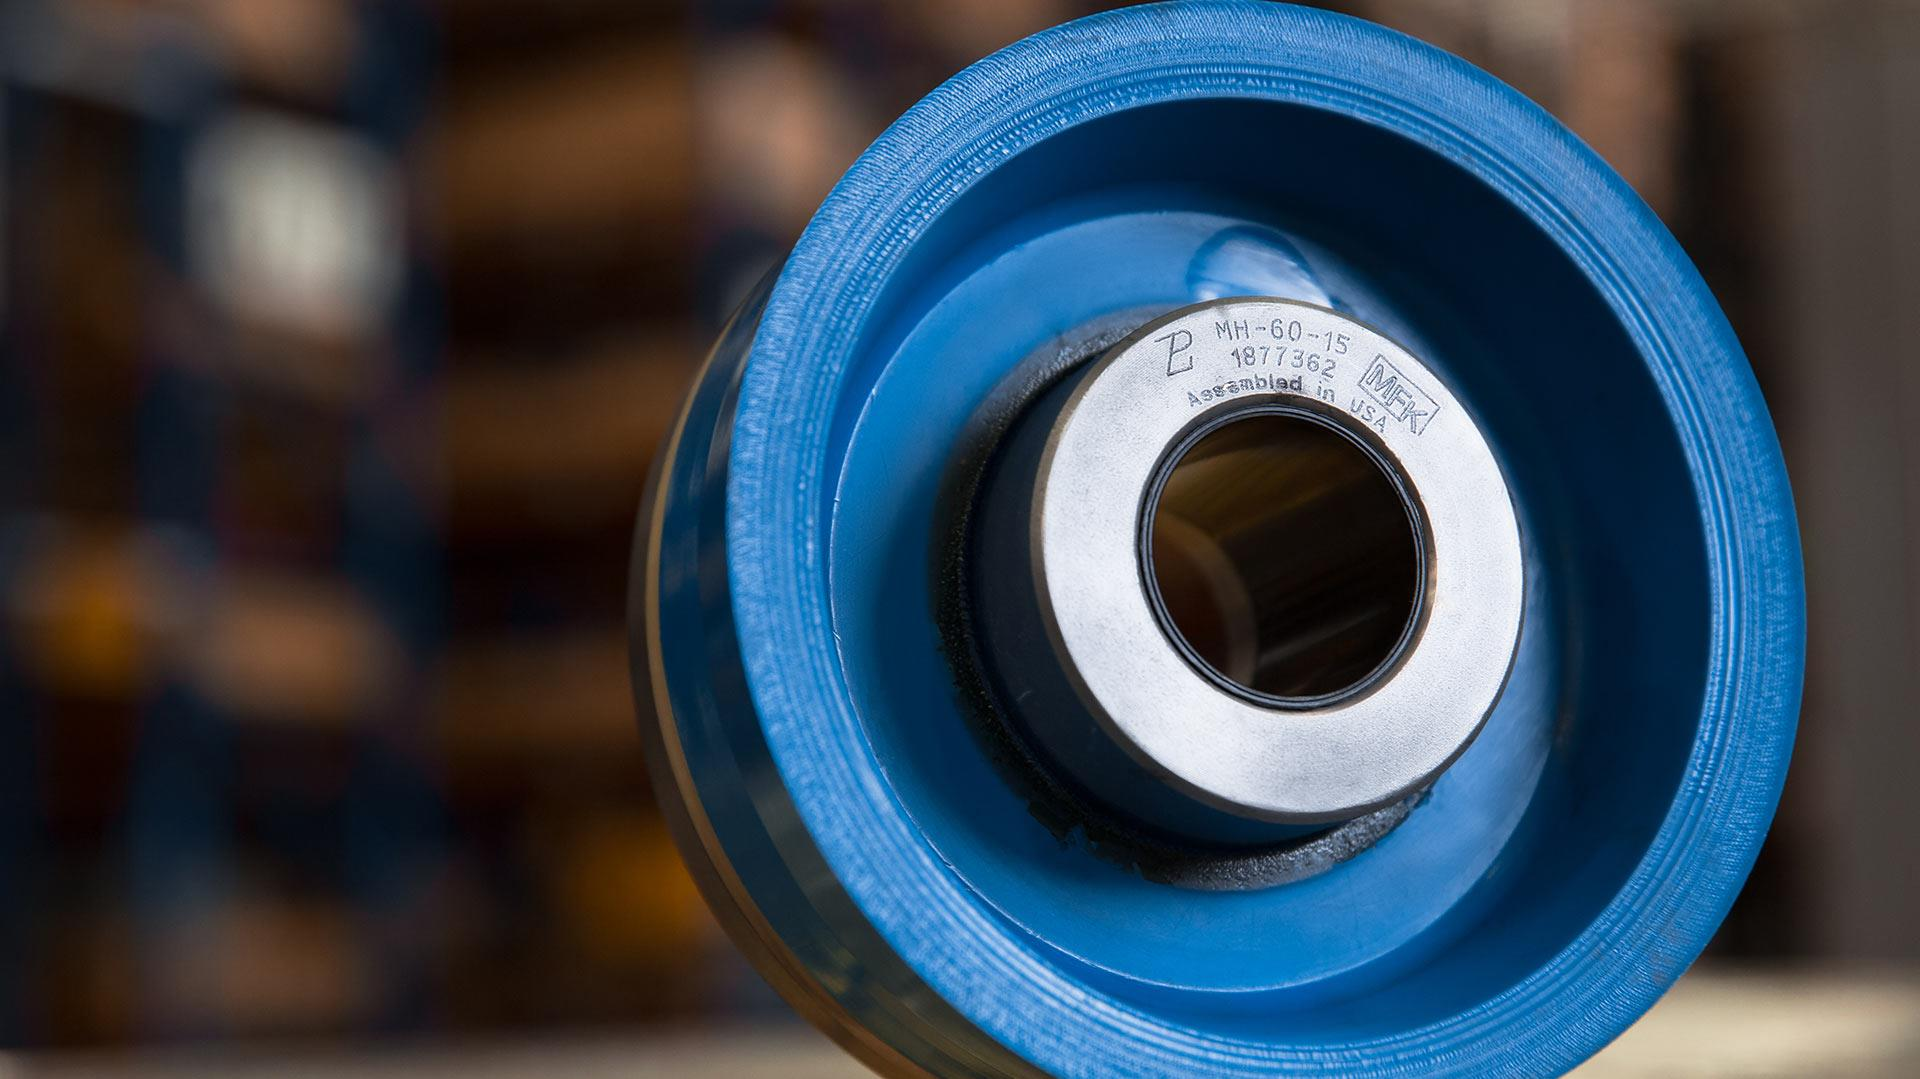 Super-premium bonded piston designed for operating in all drilling environments.